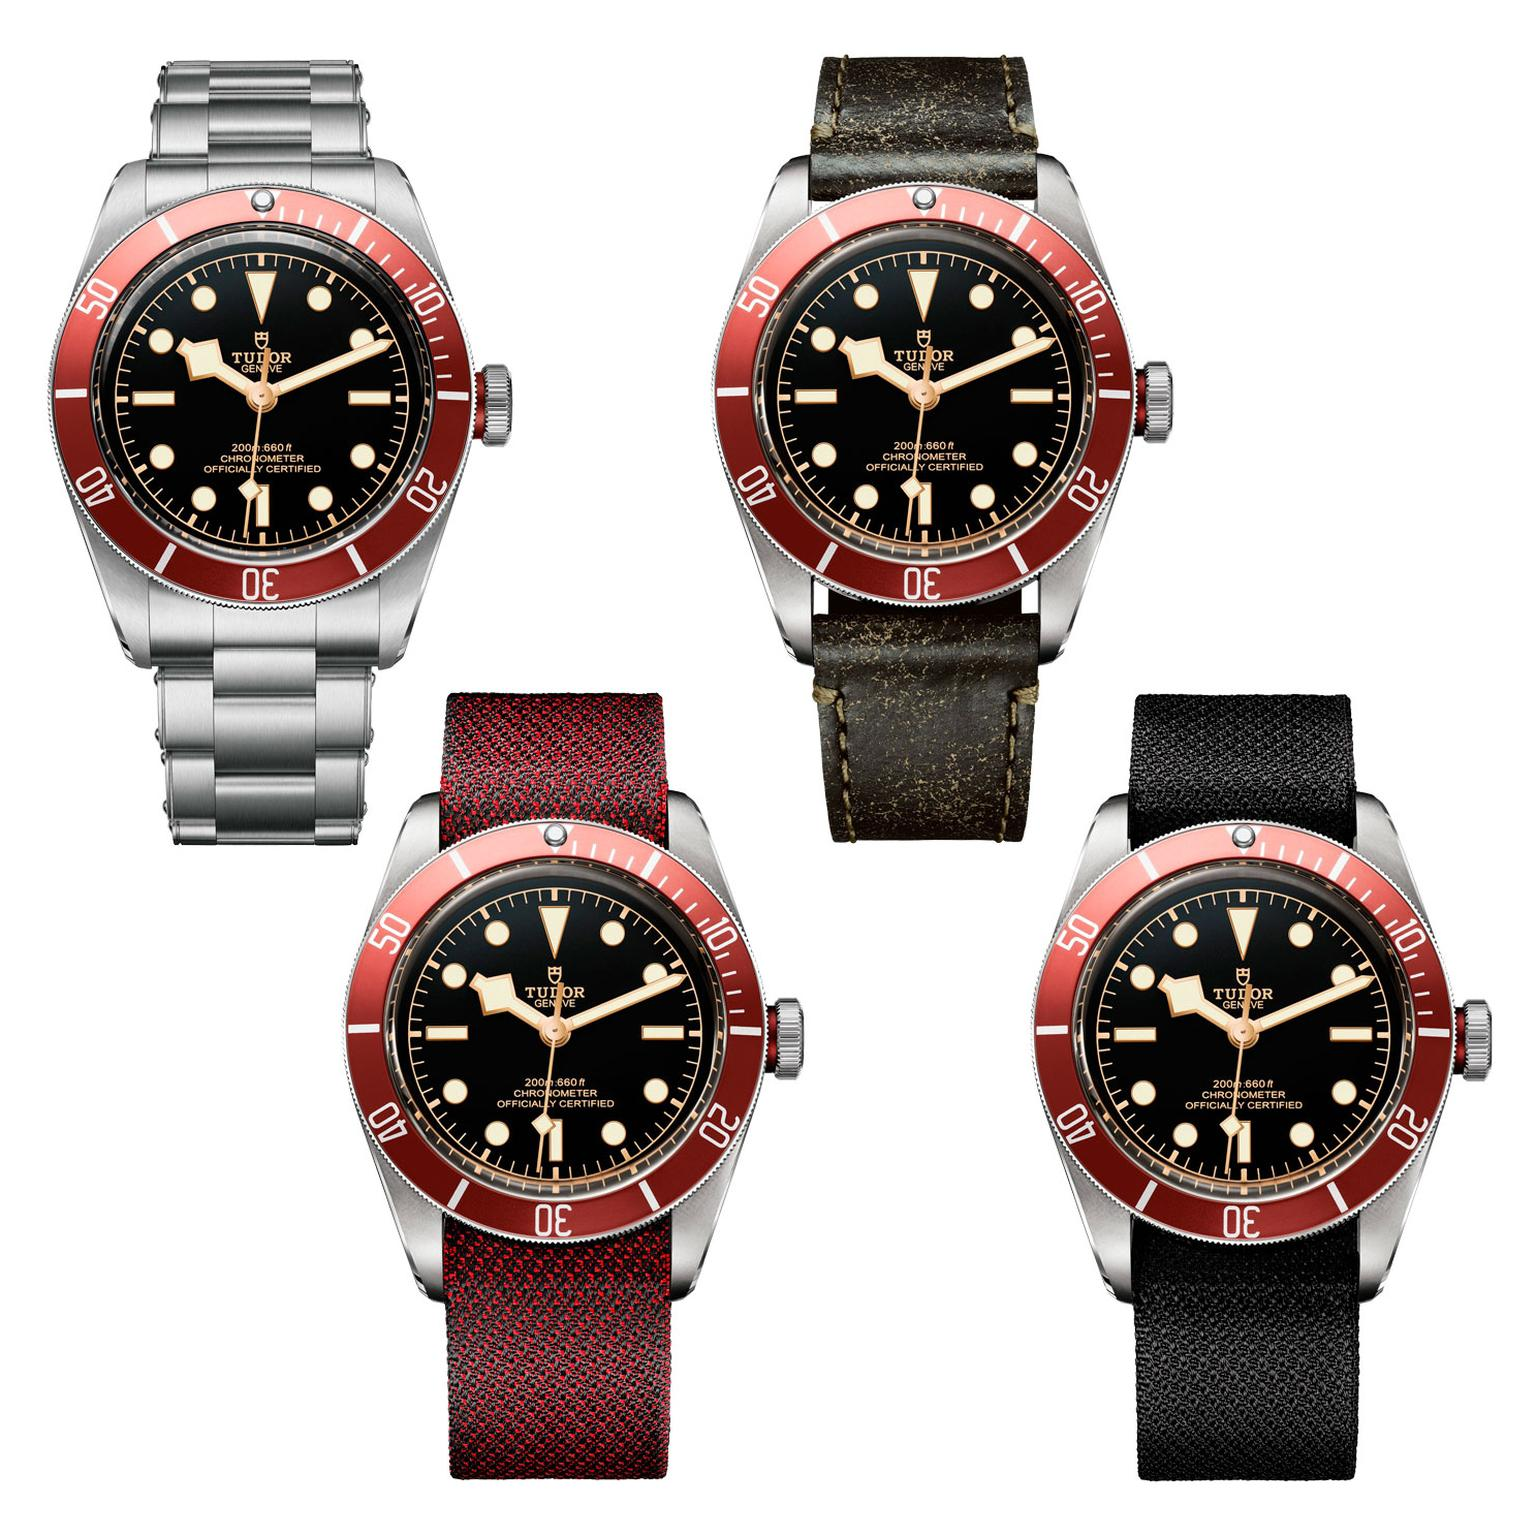 Tudor Heritage watches with metal bracelet and leather strap